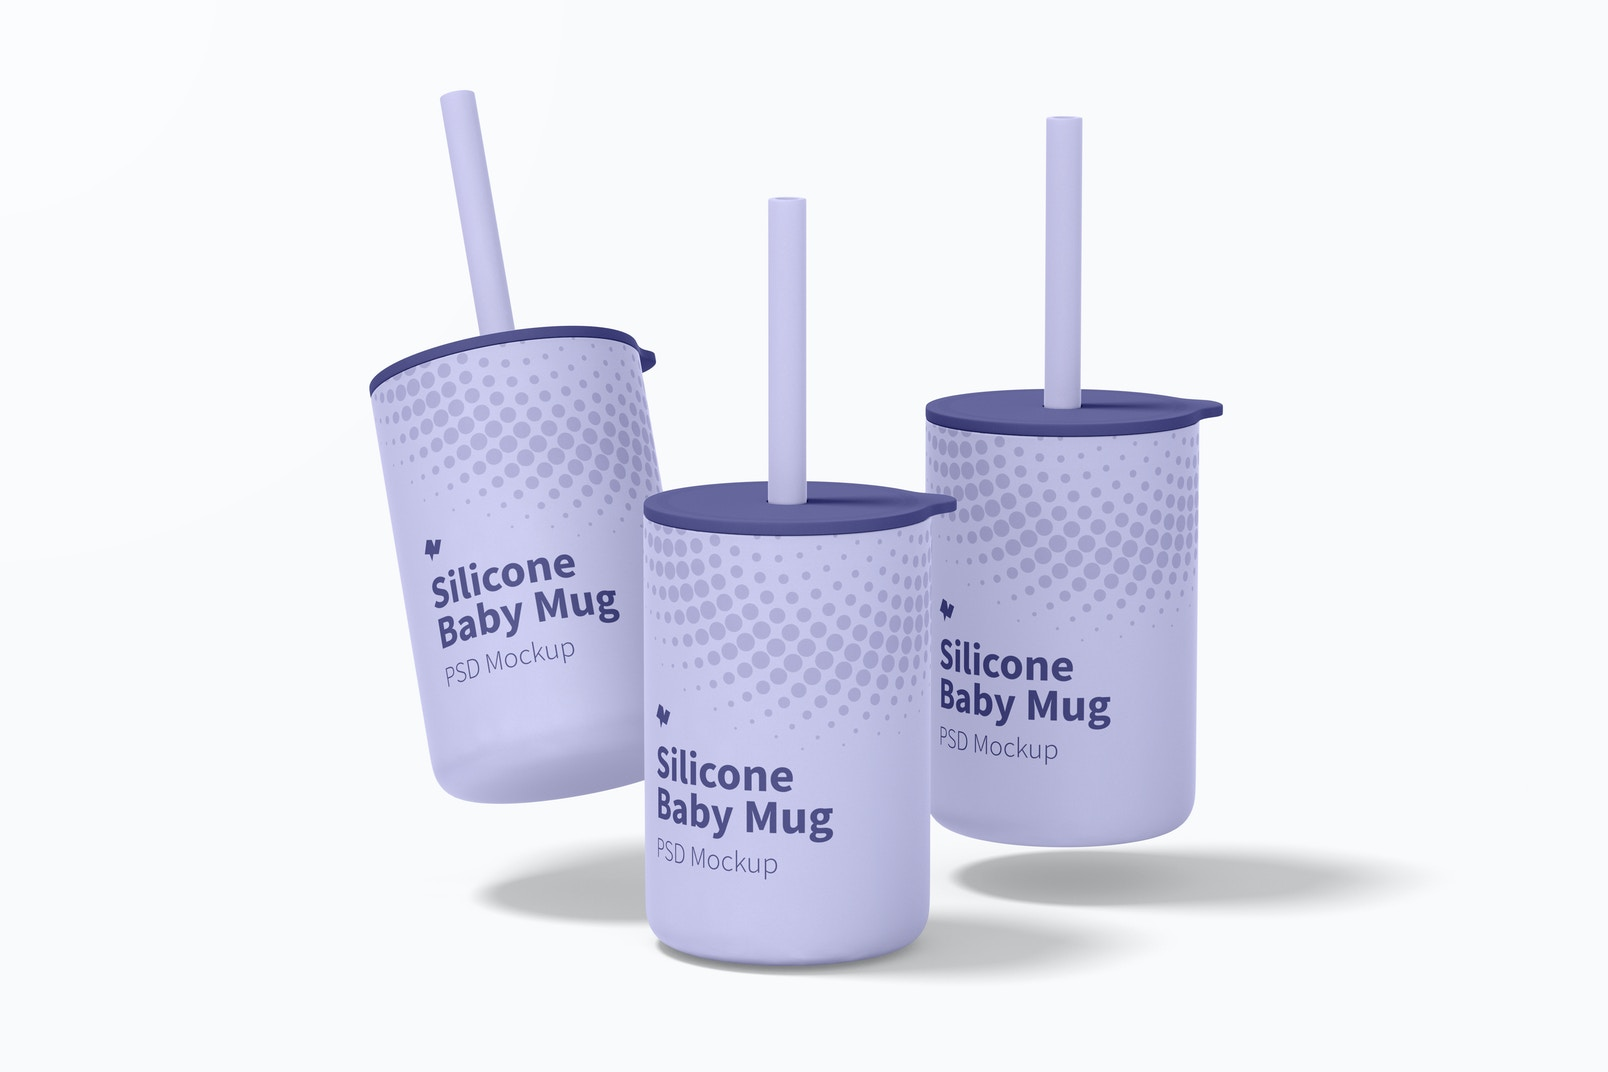 Silicone Baby Mugs with Lid Mockup, Falling